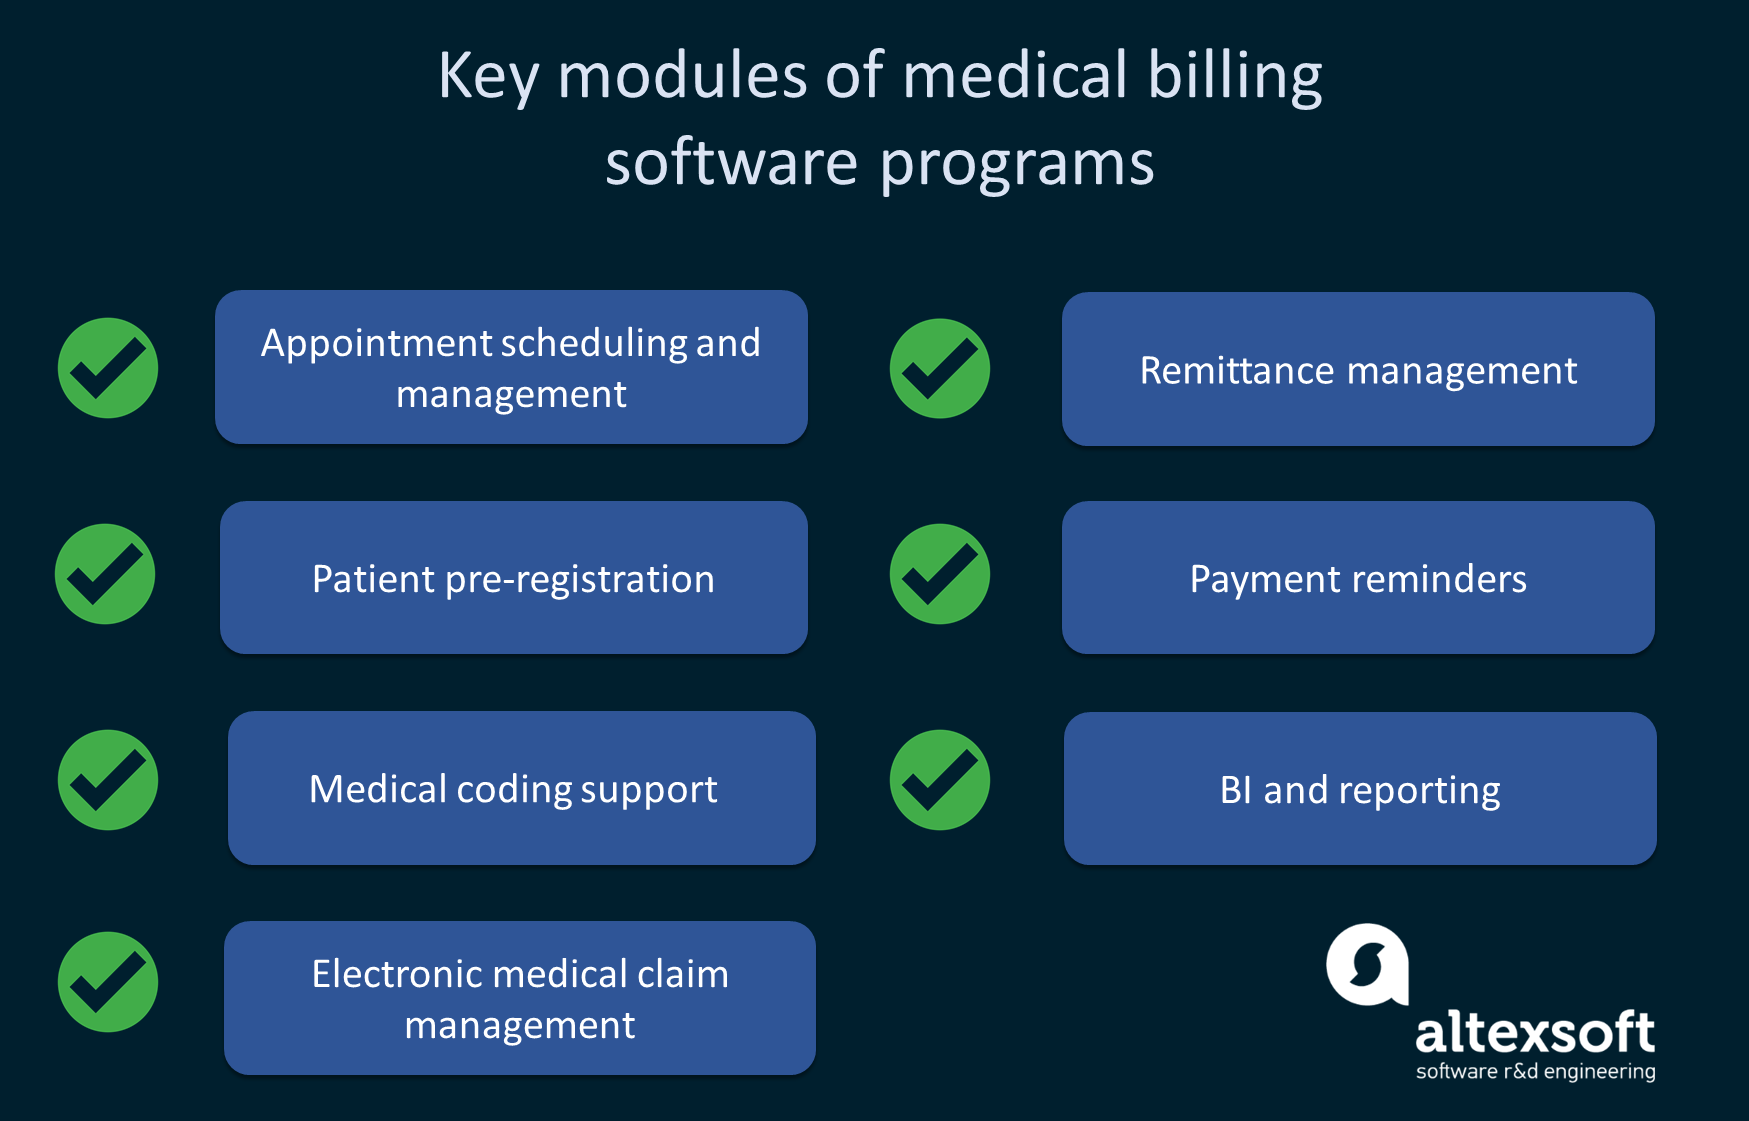 The checklist of key medical billing app modules.